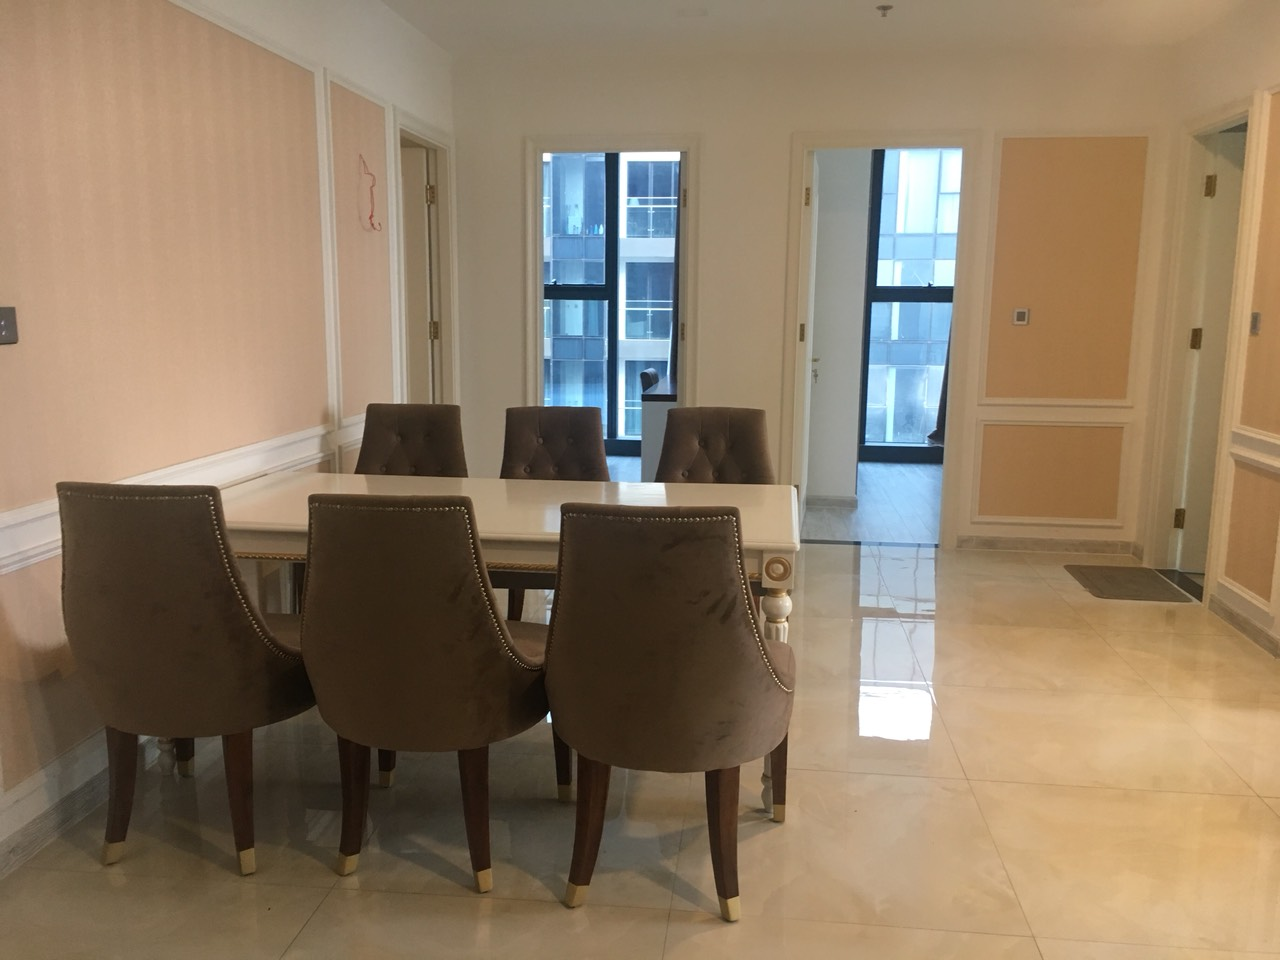 vinhomes golden river apartment for rent in district 1 hcmc D1022699 (12)